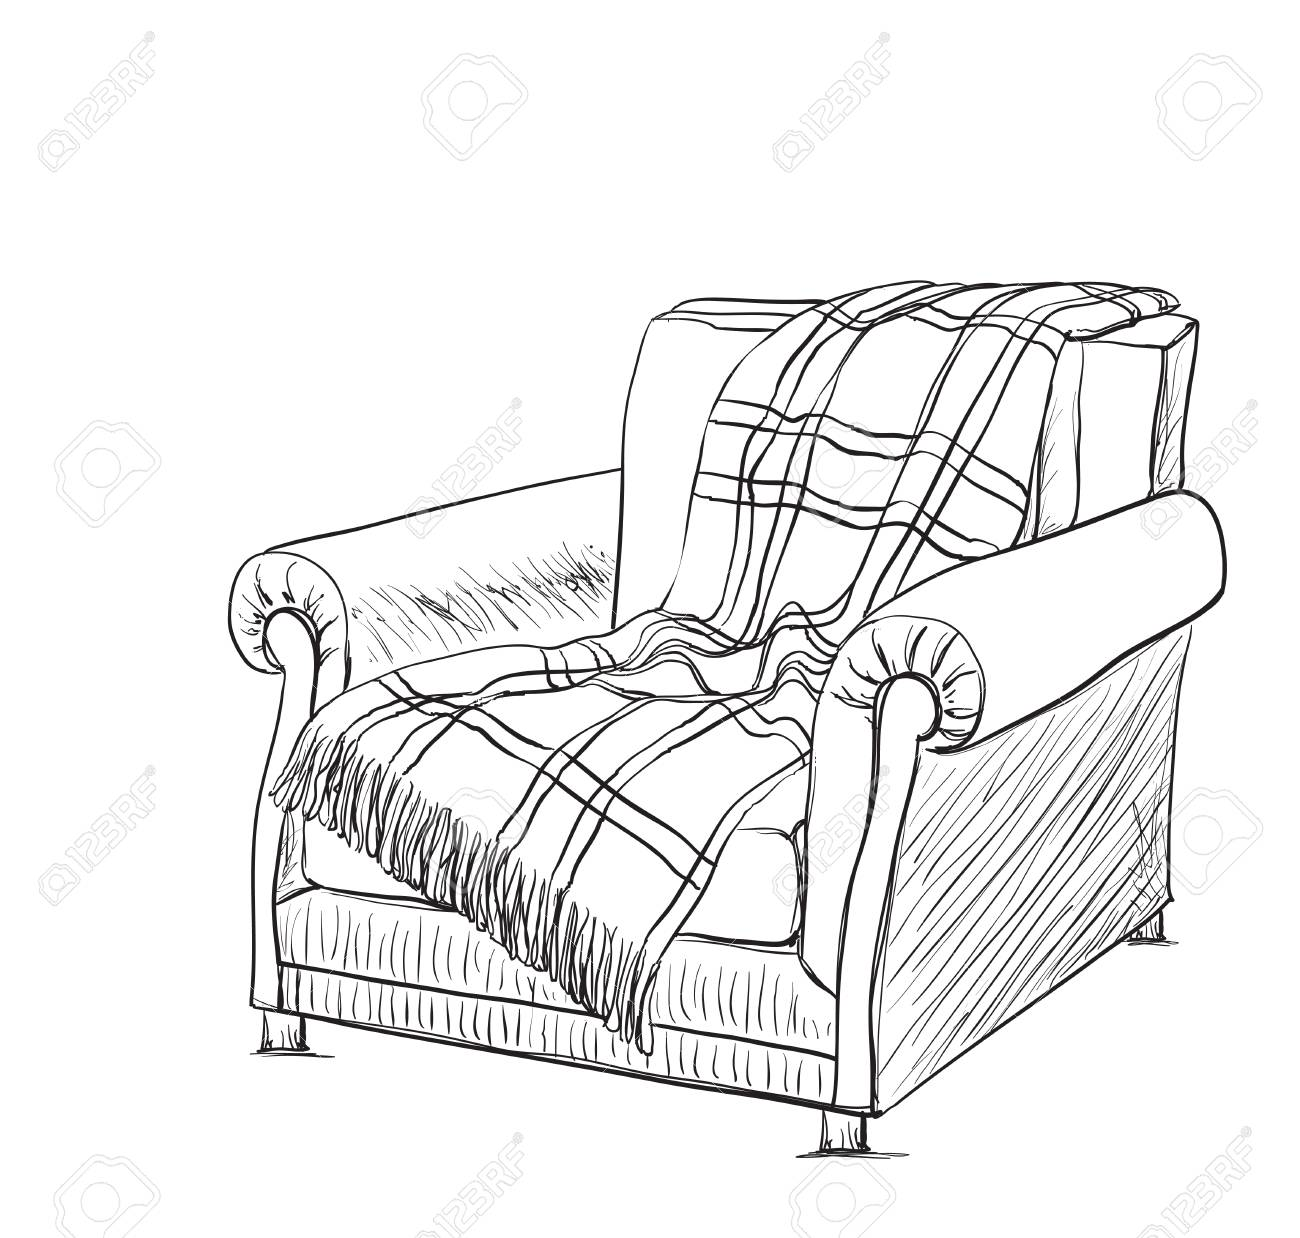 1300x1238 Chair Sketch Style Vector Illustration. Plaid On The Chair Royalty